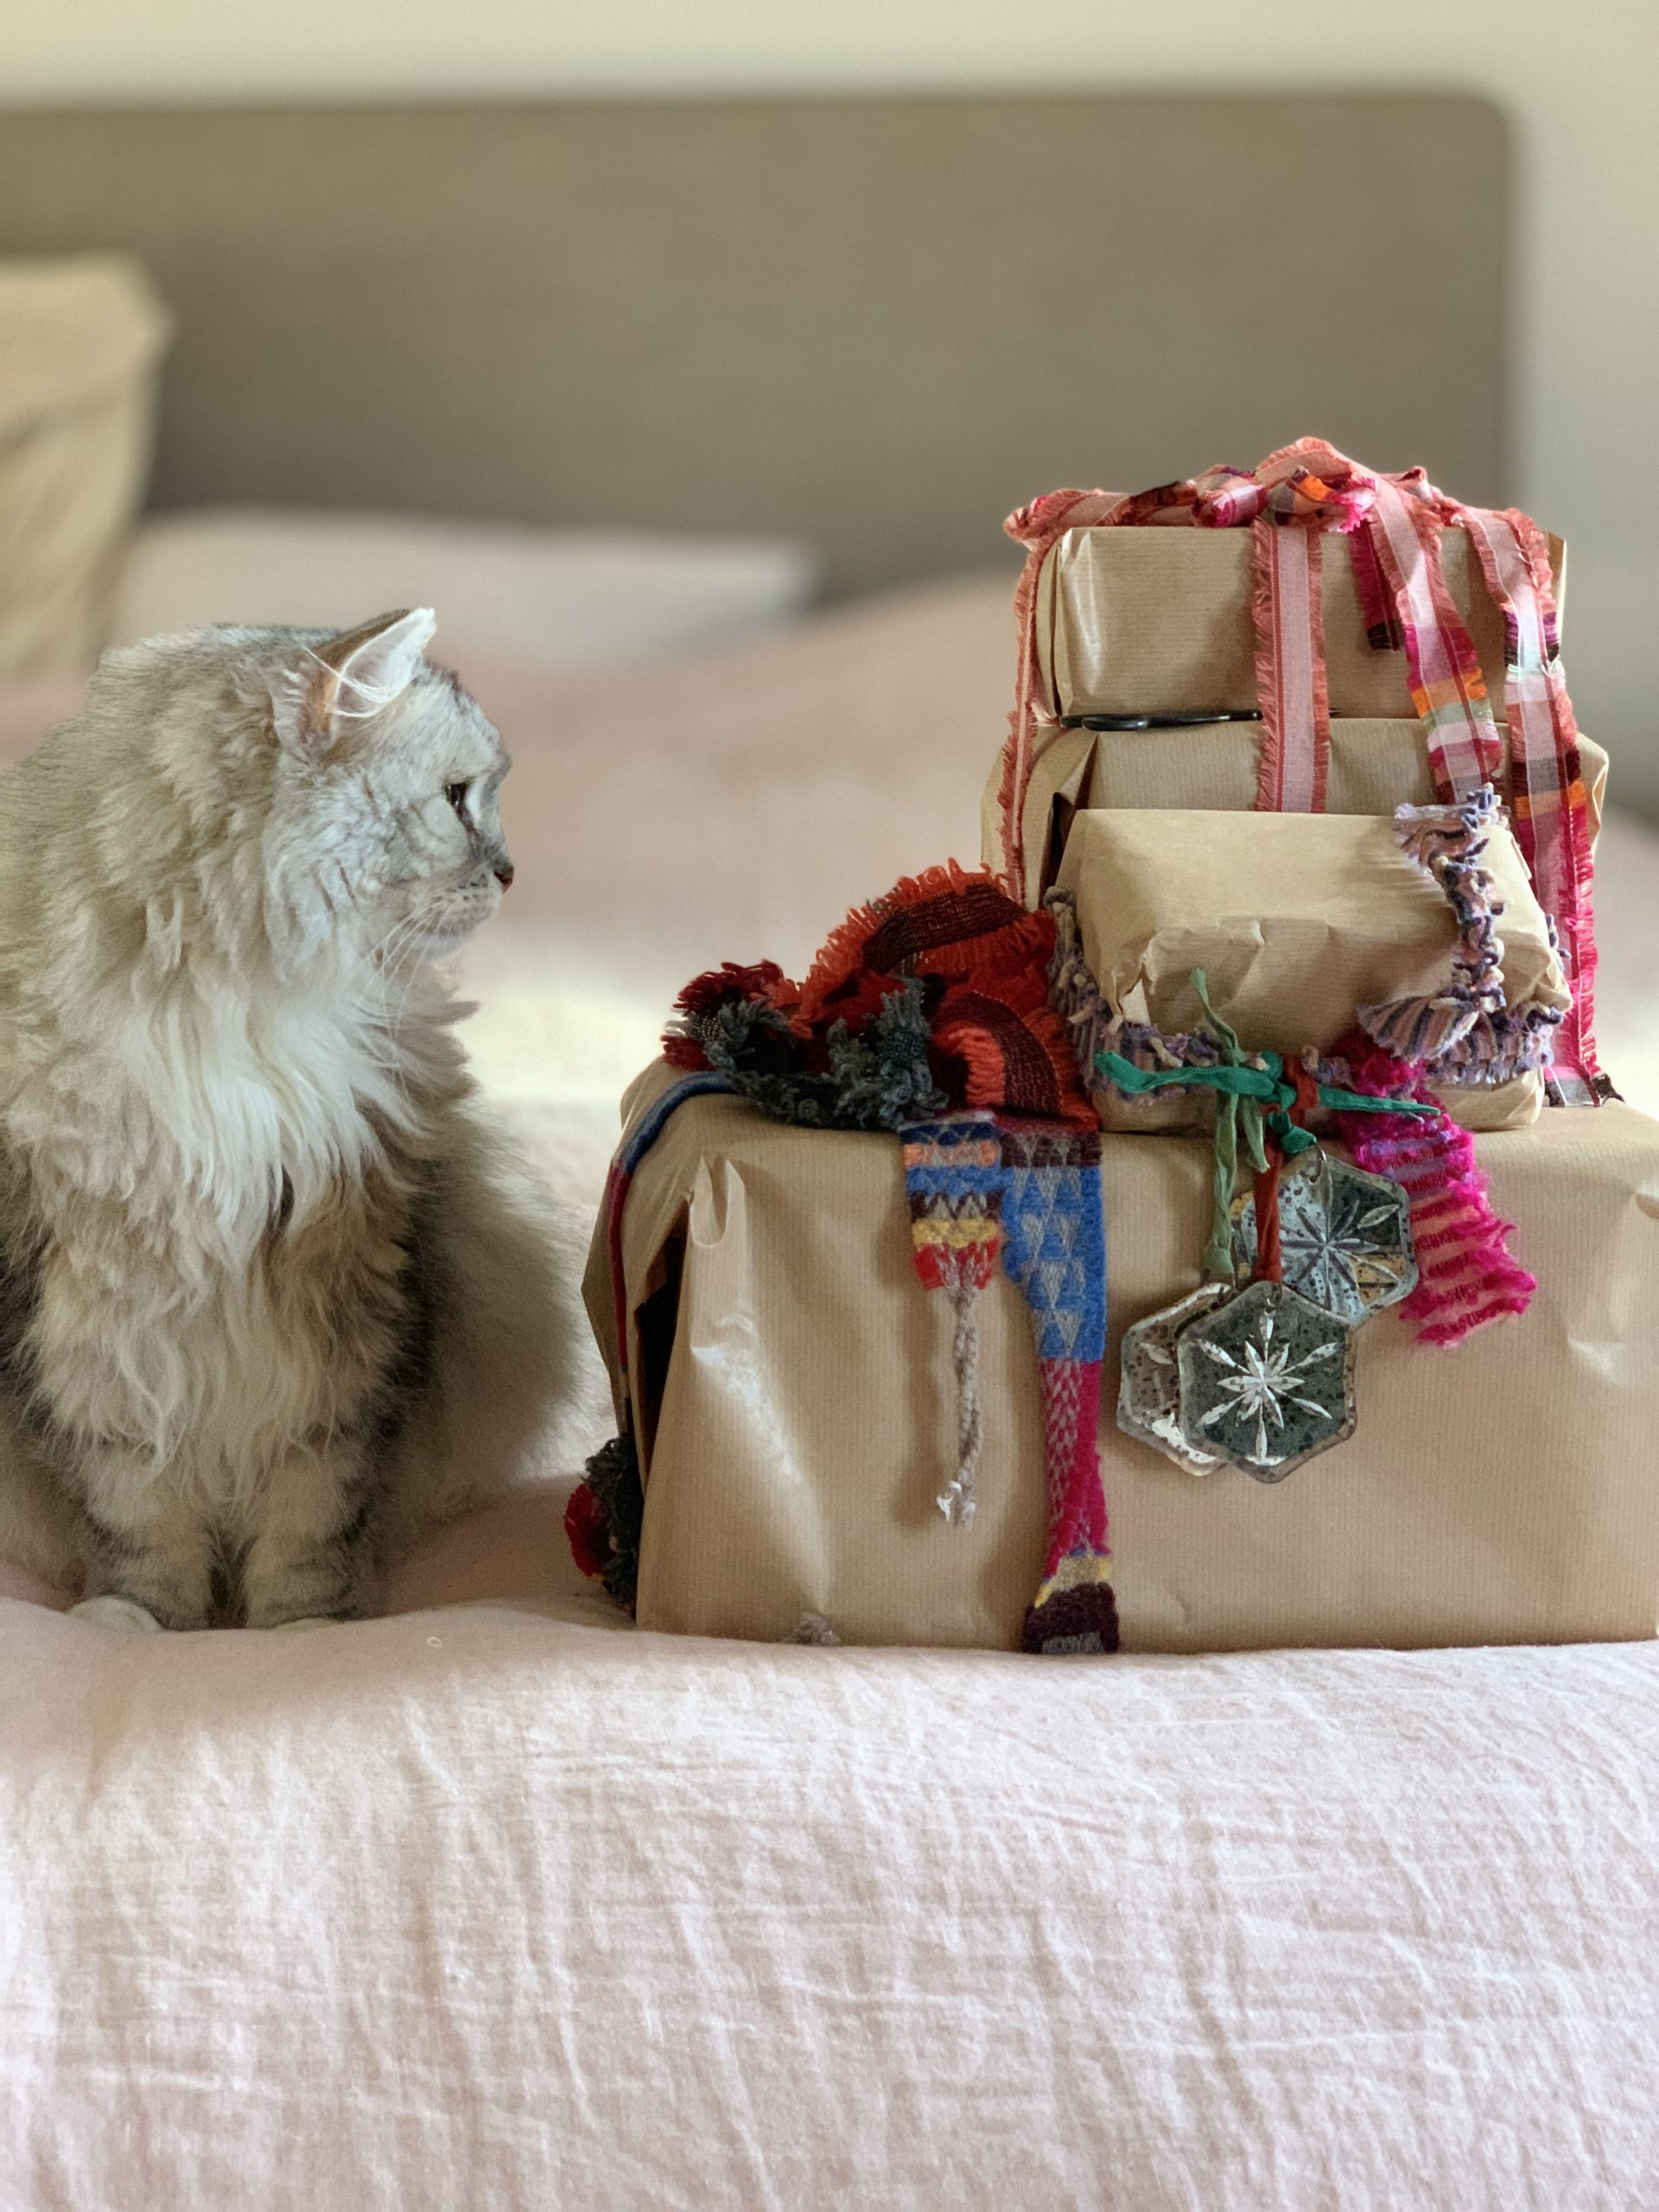 Treasures for gifting